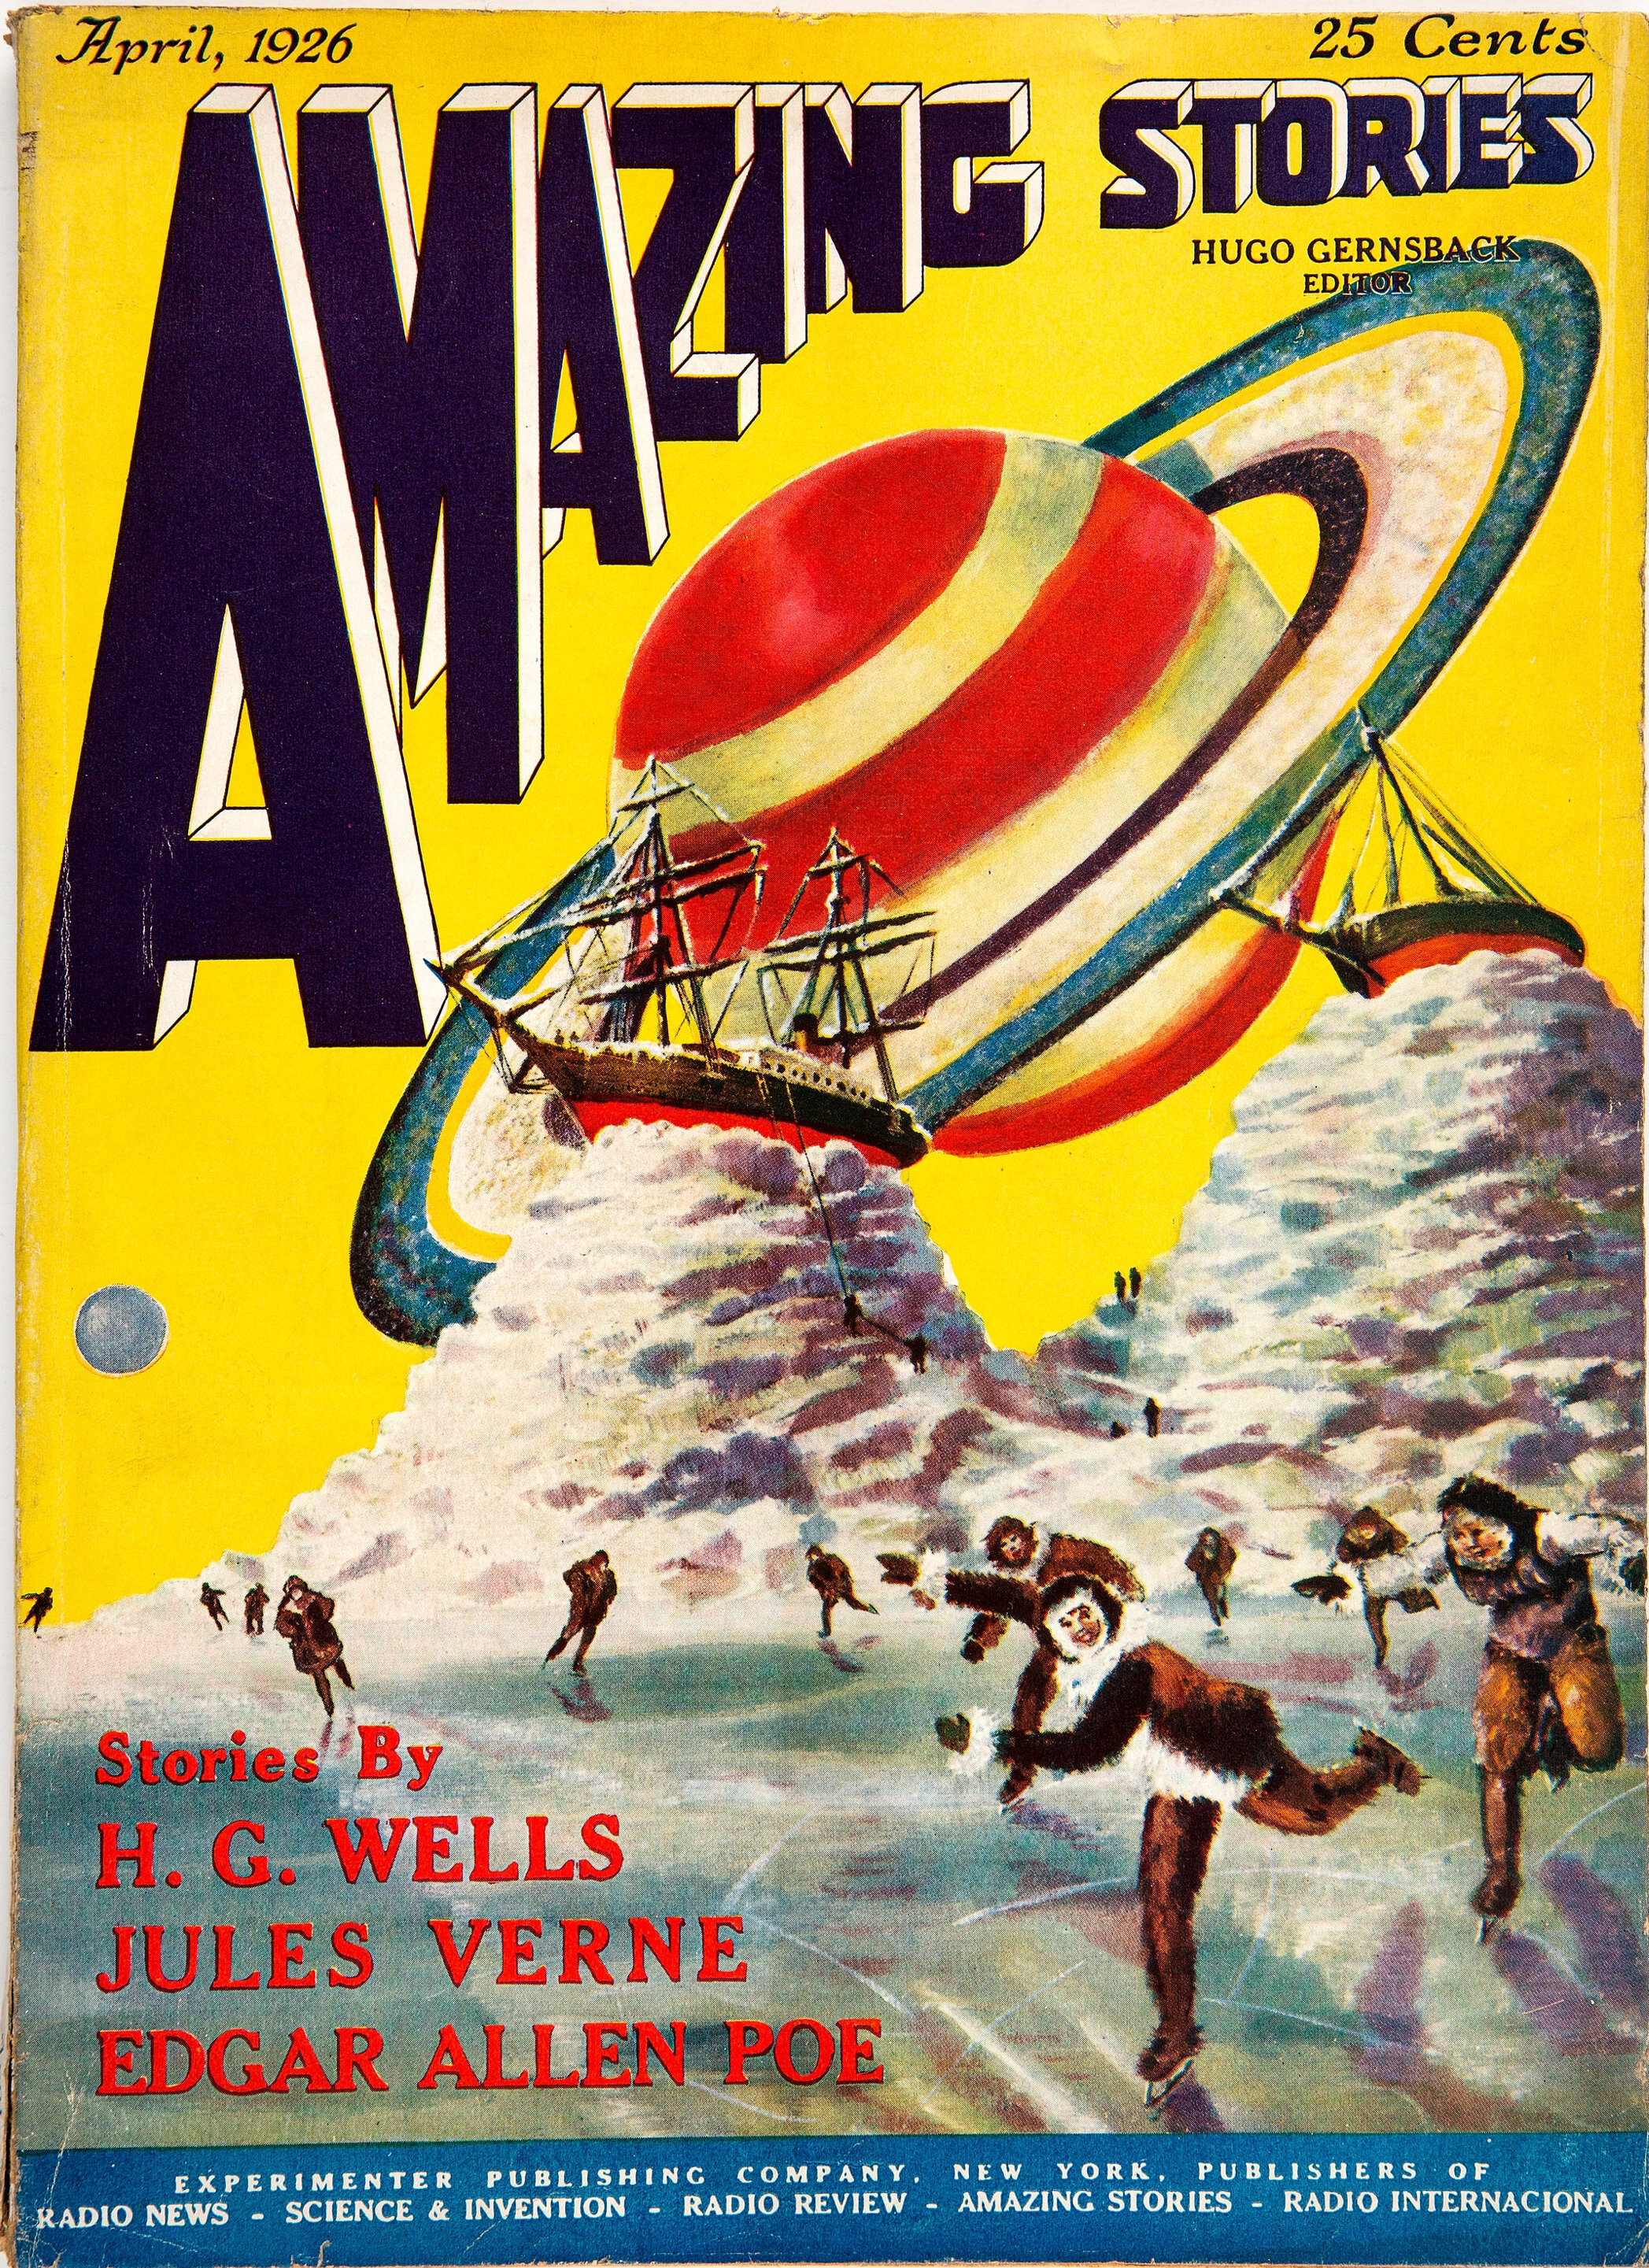 Amazing Stories, April 1926, Volume 1 Number . Credit: Published by Experimenter Publishing Co./Wikimedia Commons